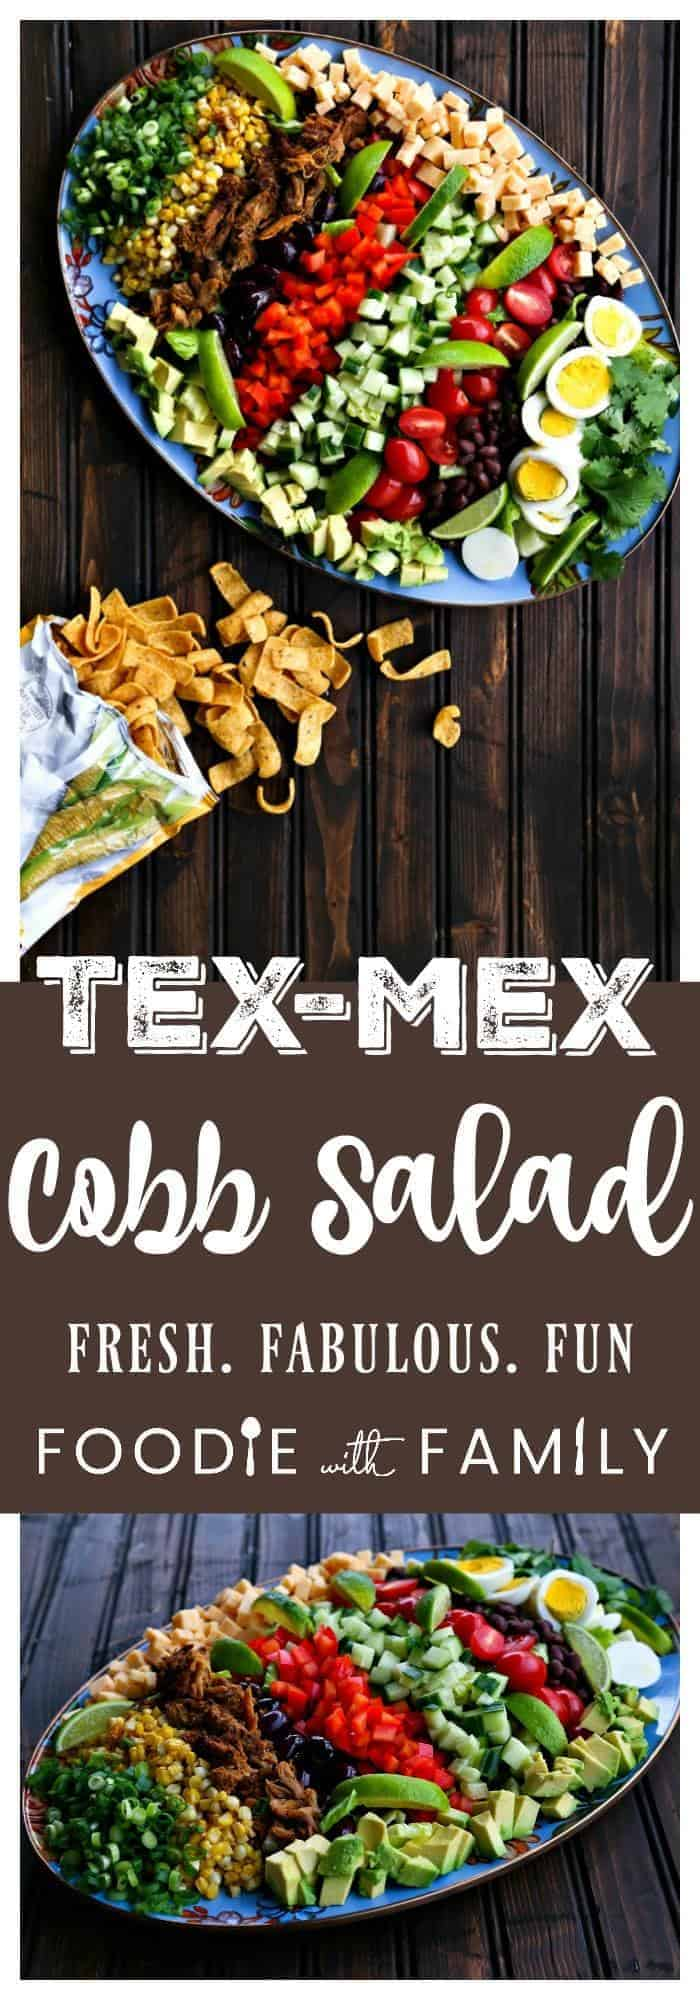 Tex-Mex Cobb Salad is crispy romaine absolutely bursting with green onions, roasted corn, crispy carnitas, bell peppers, cucumbers, tomatoes, hard boiled eggs, avocados, and lime juice. This is a serious and seriously fun salad!